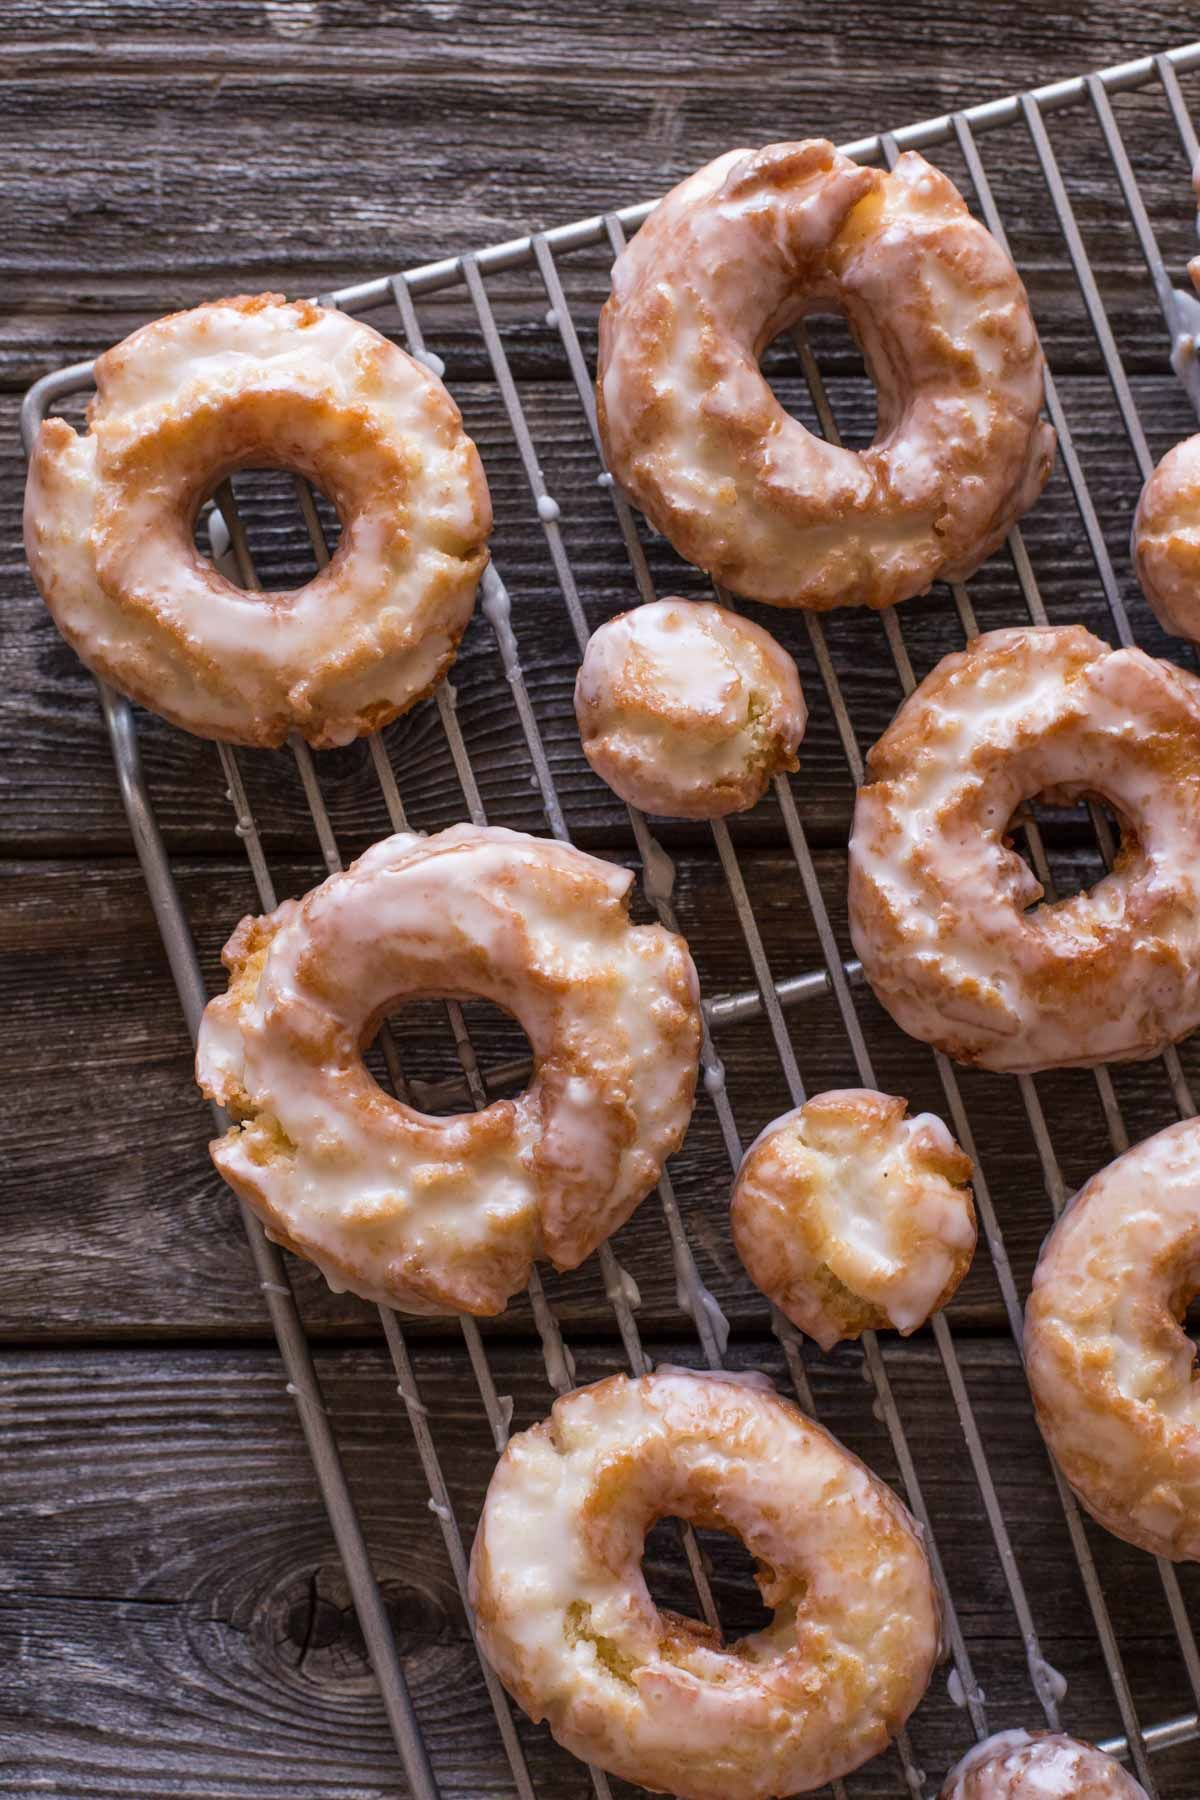 These Old Fashioned Buttermilk Donuts Are All About The Texture They Are Soft And Cakey On The Inside Chicken And Donuts Sour Cream Donut Cake Donuts Recipe